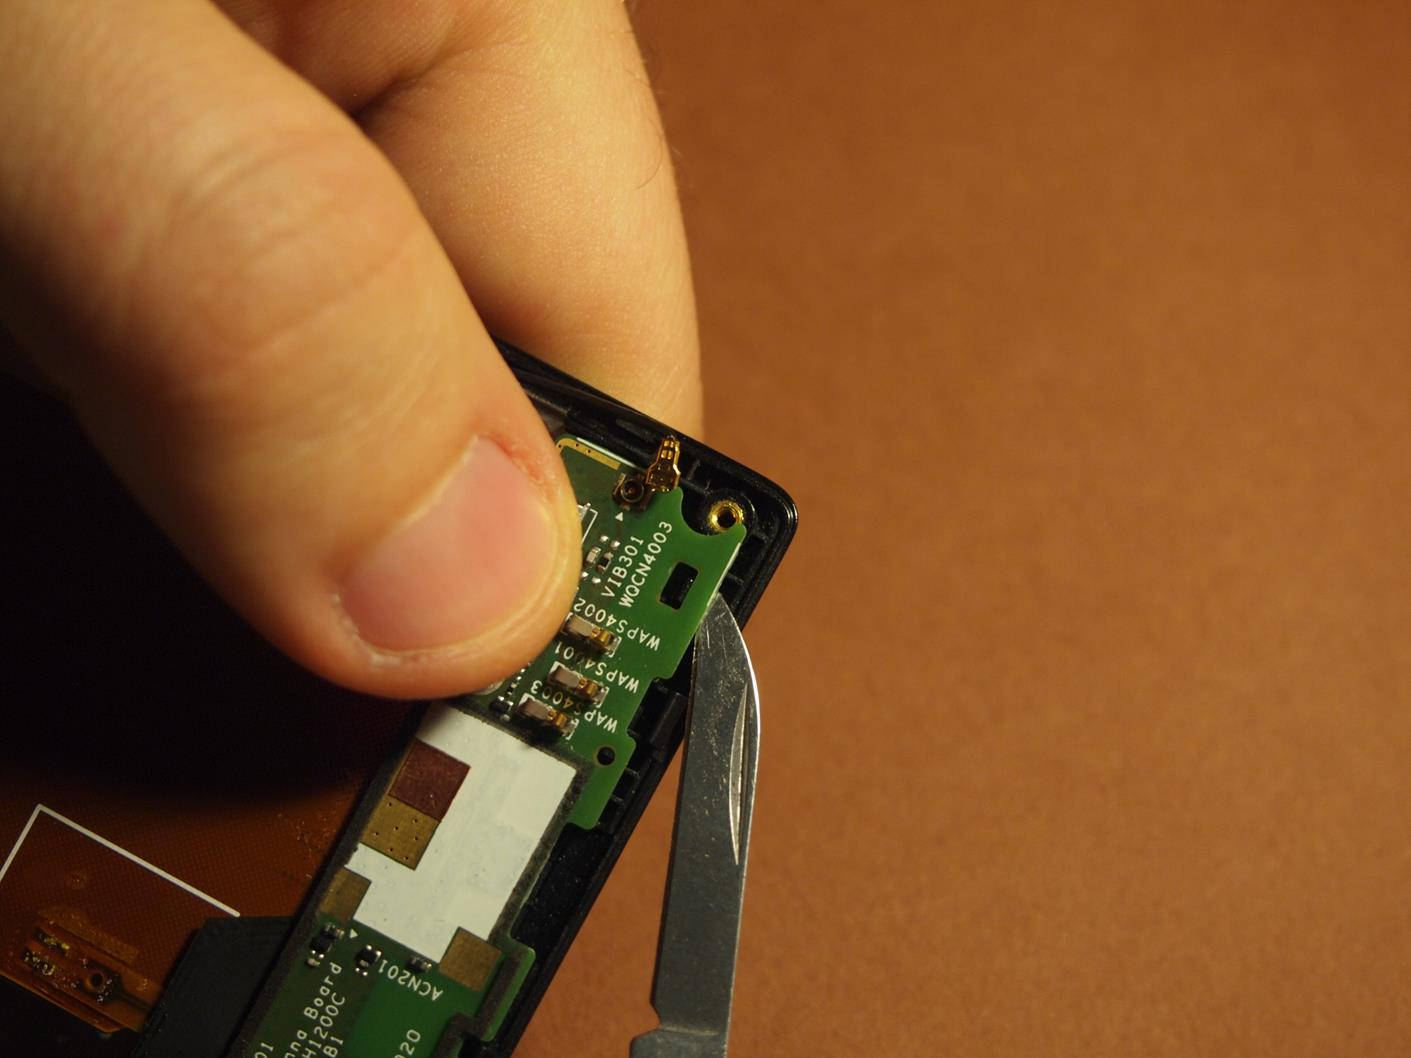 Sony Xperia J Remove And Replace Display Touchscreen The S Circuit Diagram 14 Sub Board Removing